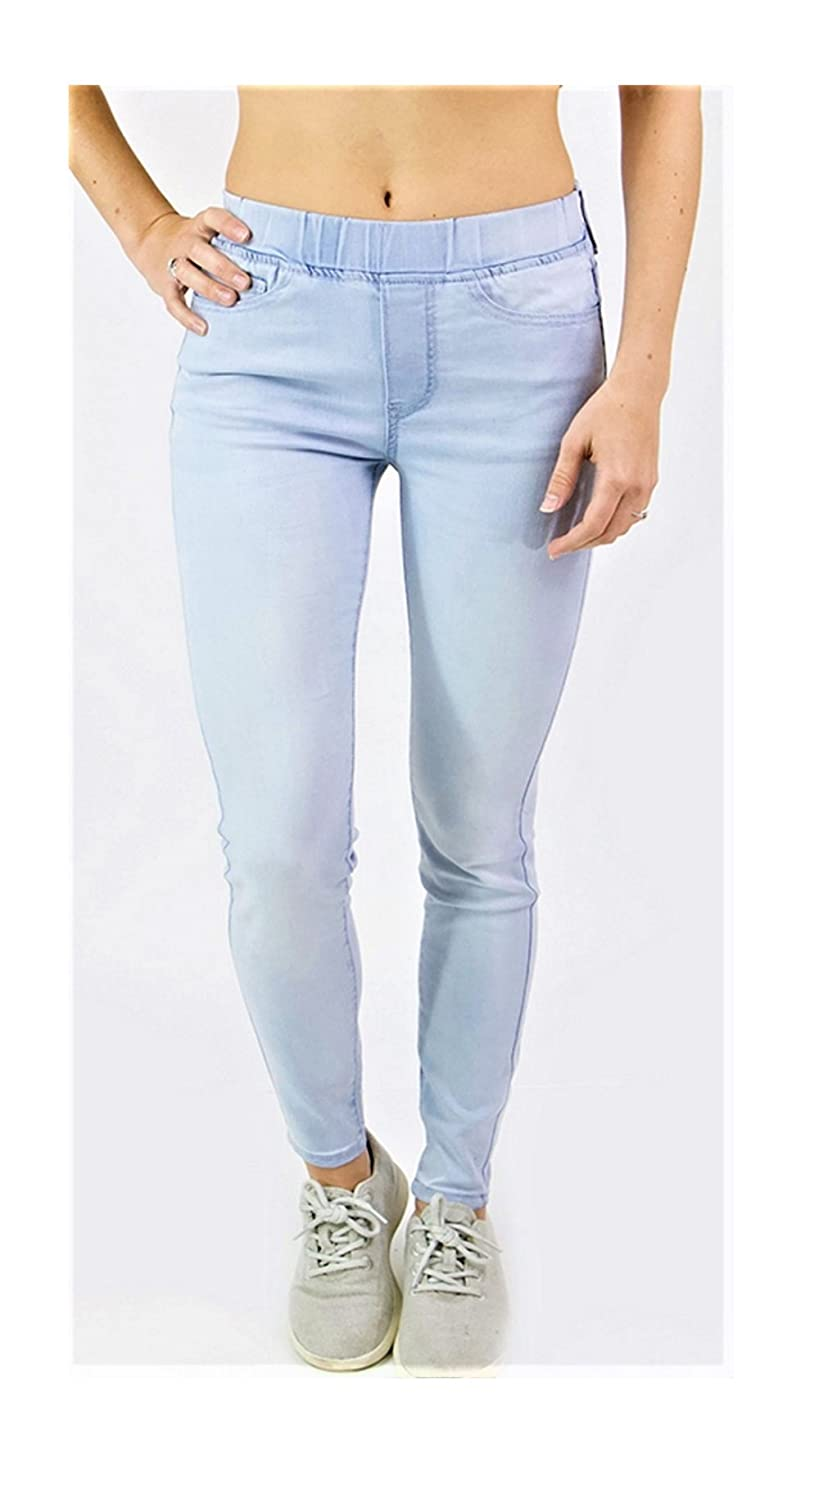 b35cfa6e7d4c3 Grace and Lace Women's Light Blue Skinny Jeans Soft Stretch Pull On Jeggings  at Amazon Women's Jeans store